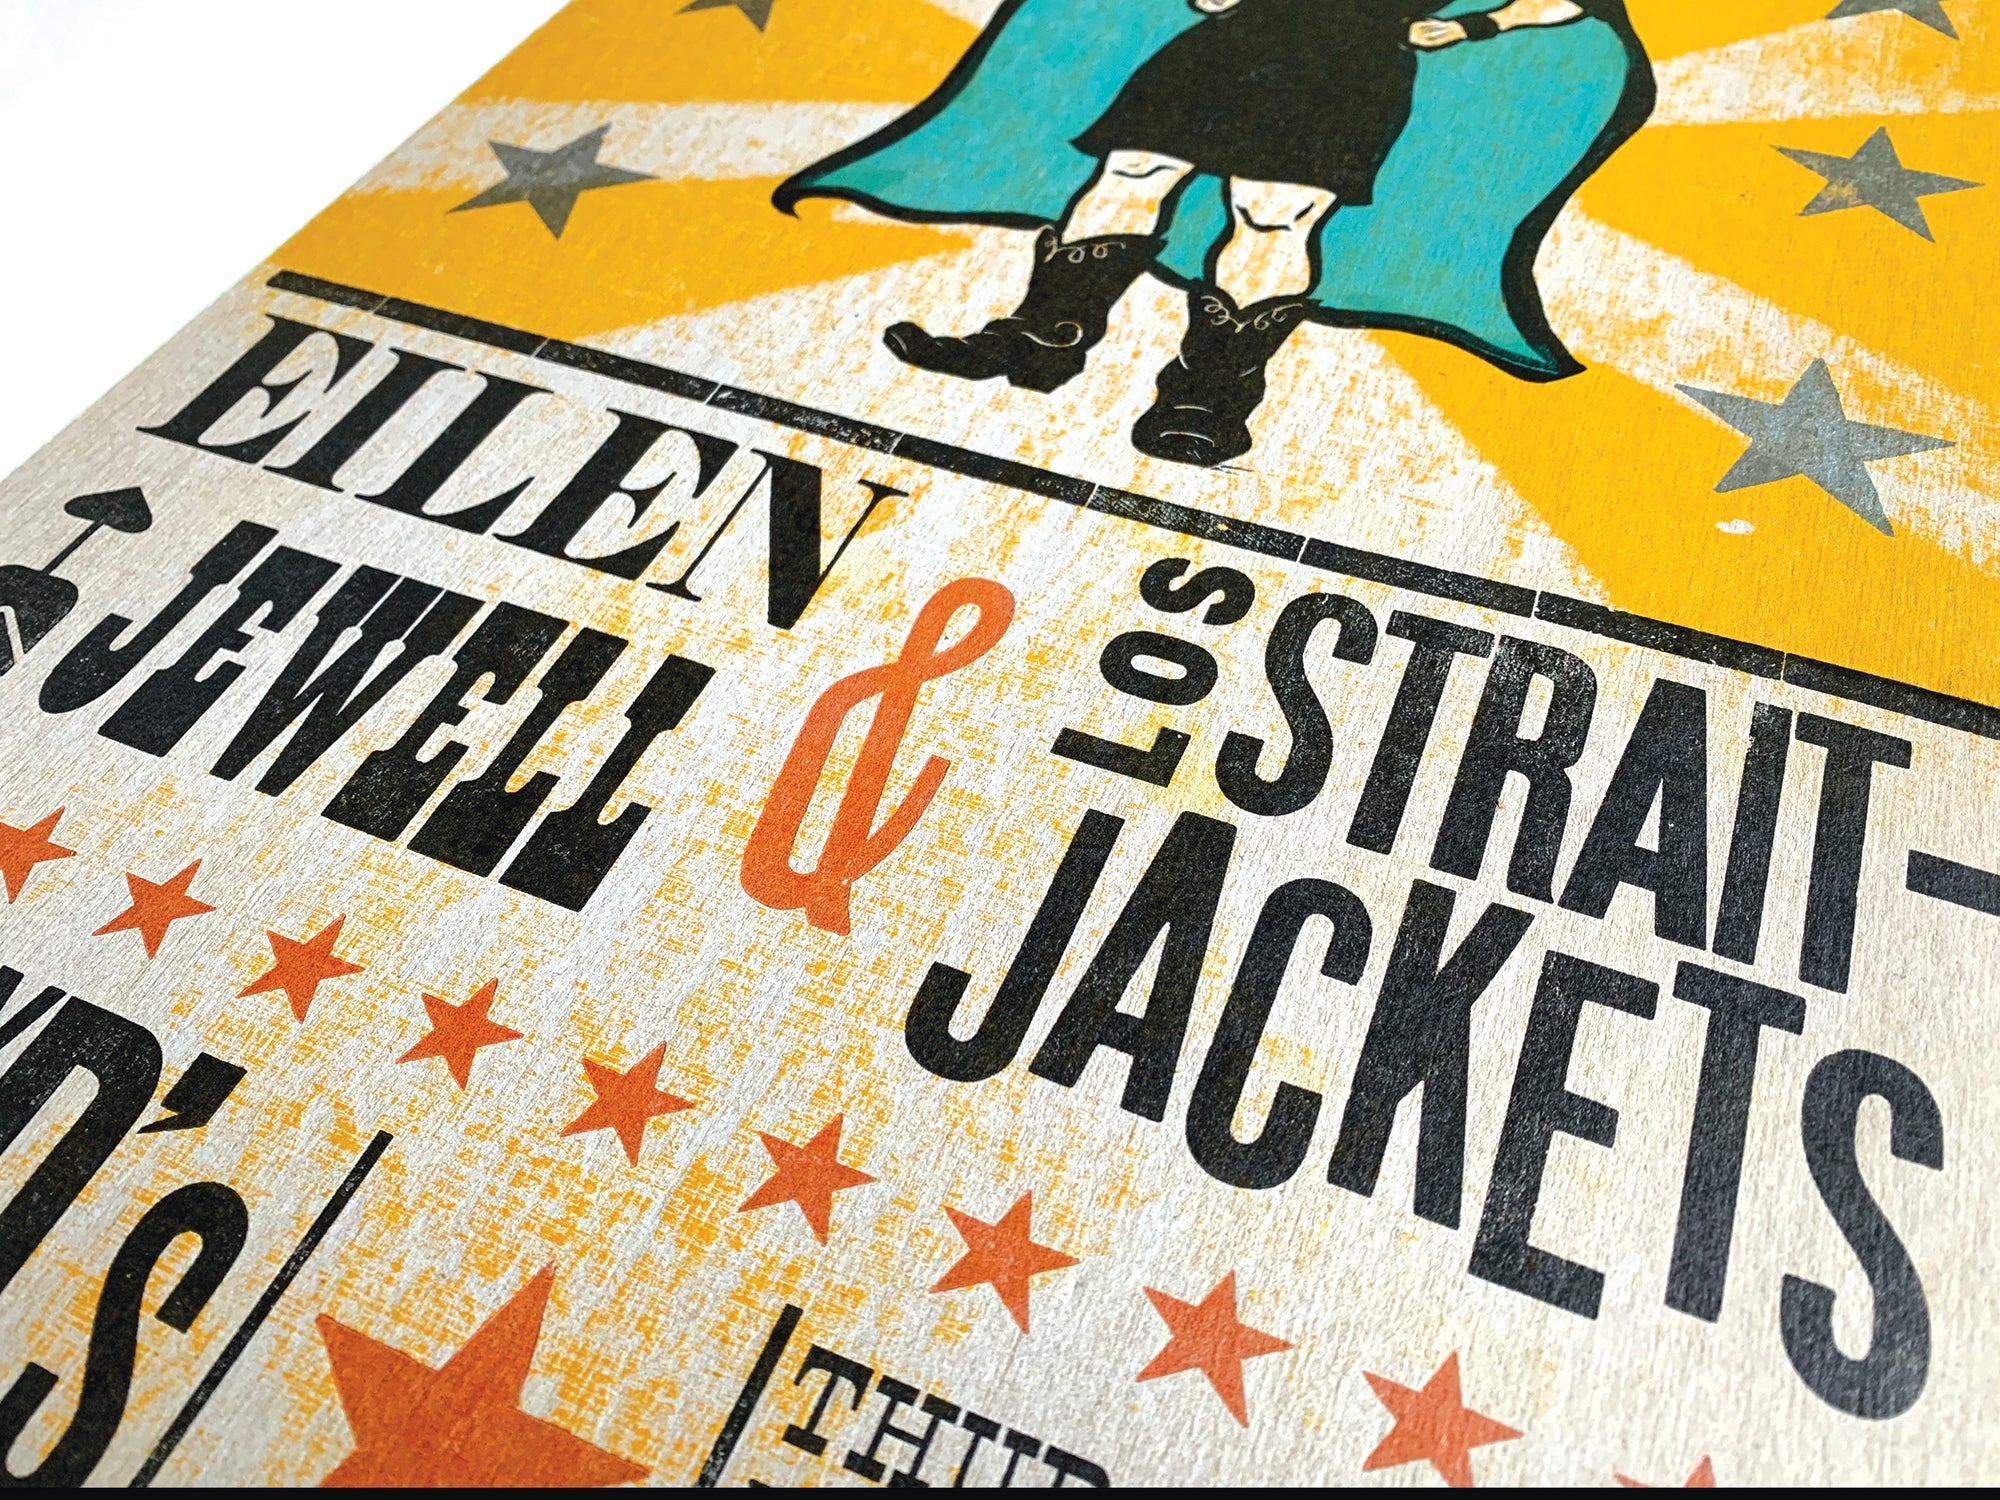 Eilen Jewell/Los Straitjackets Concert Poster